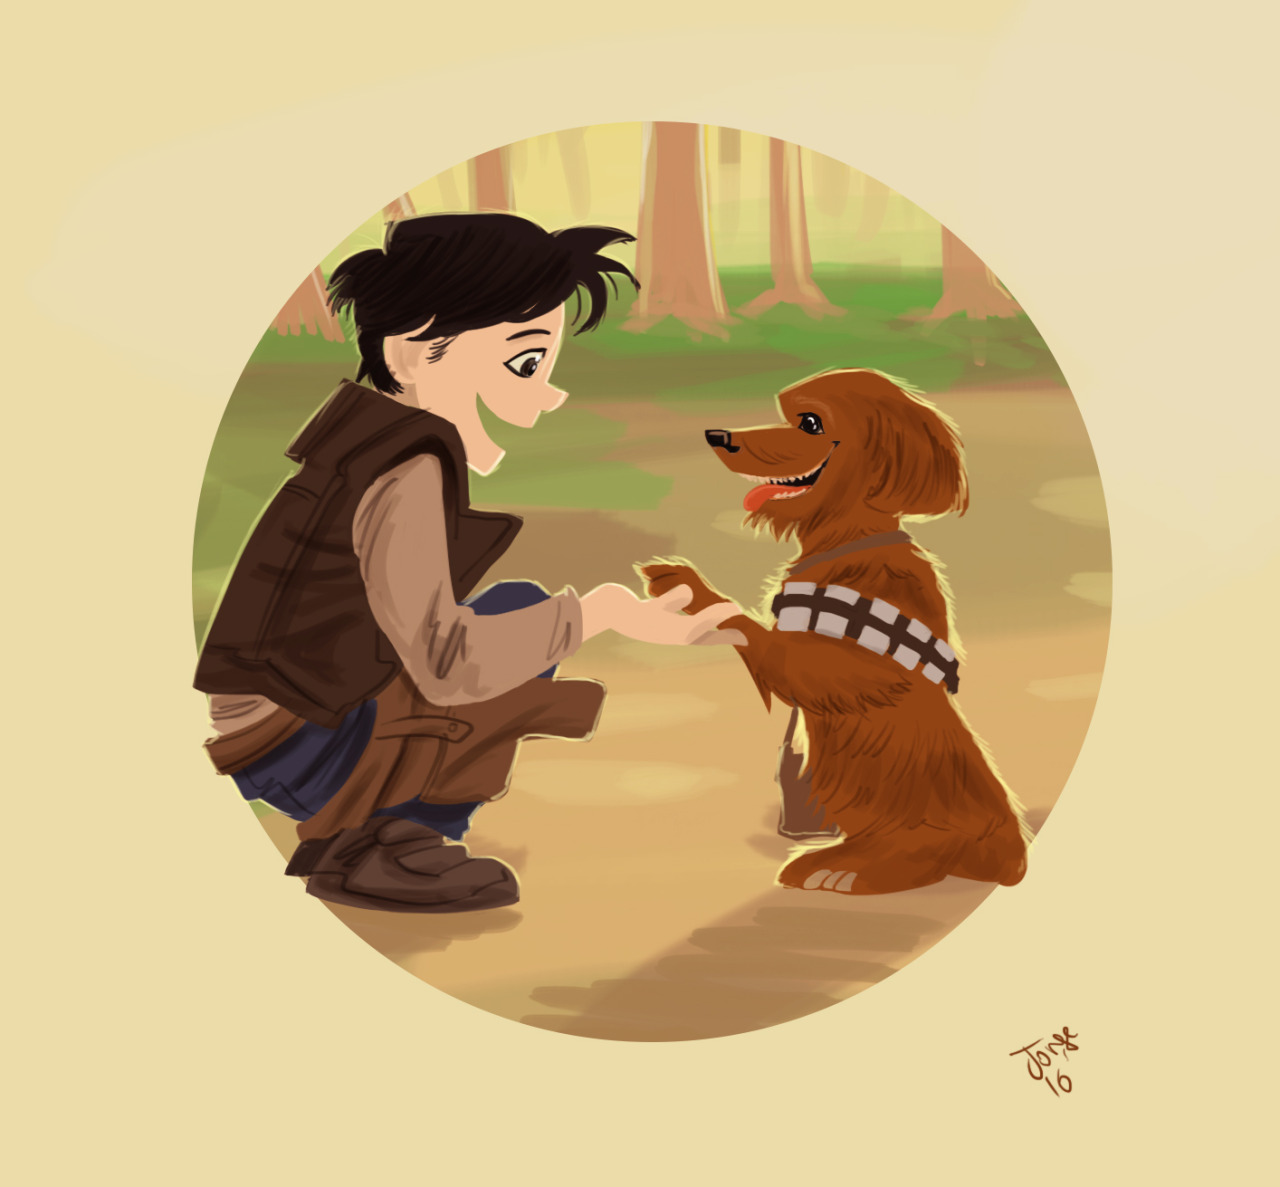 Han Solo kid and Chewie dog